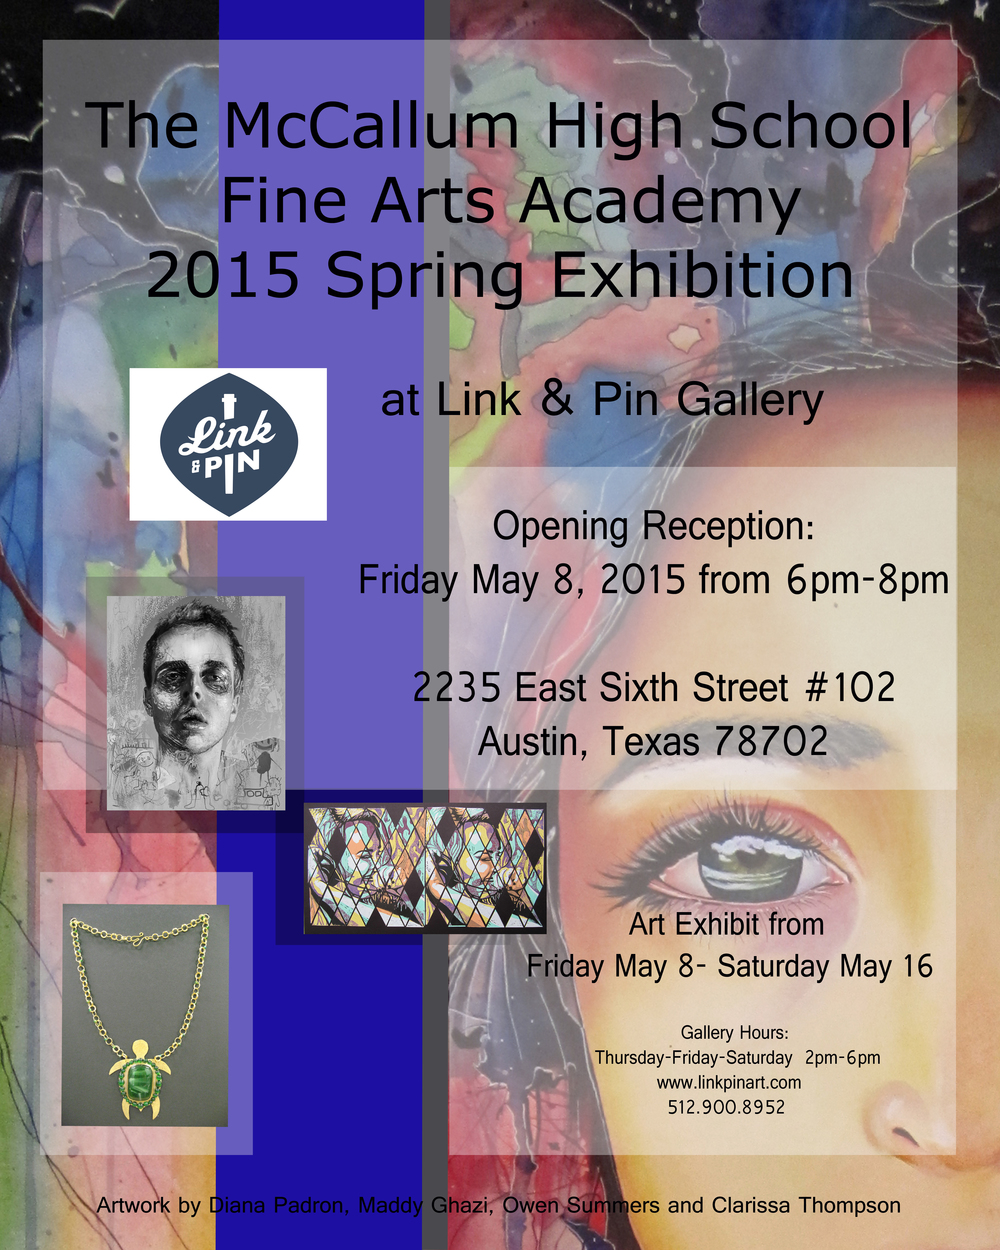 McCallum High School Fine Arts Academy